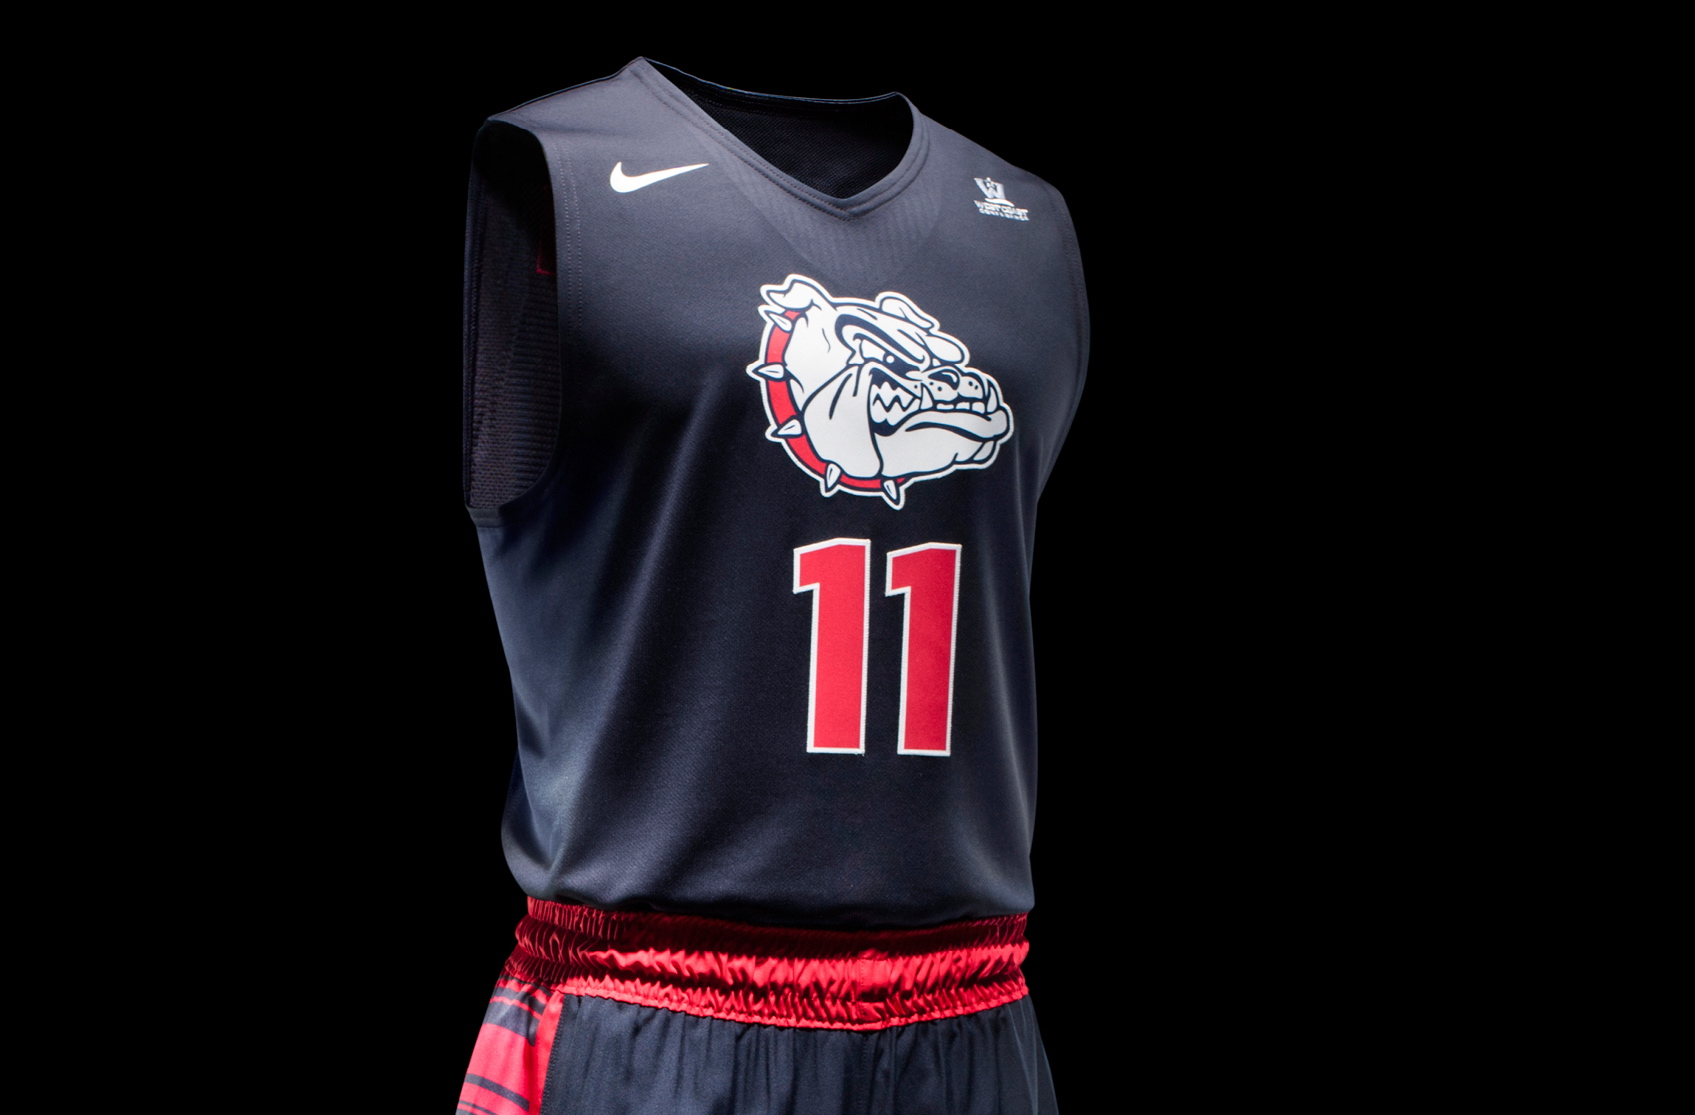 Gonzaga To Wear New Road Uniforms First Of 12 New Nike Road Looks